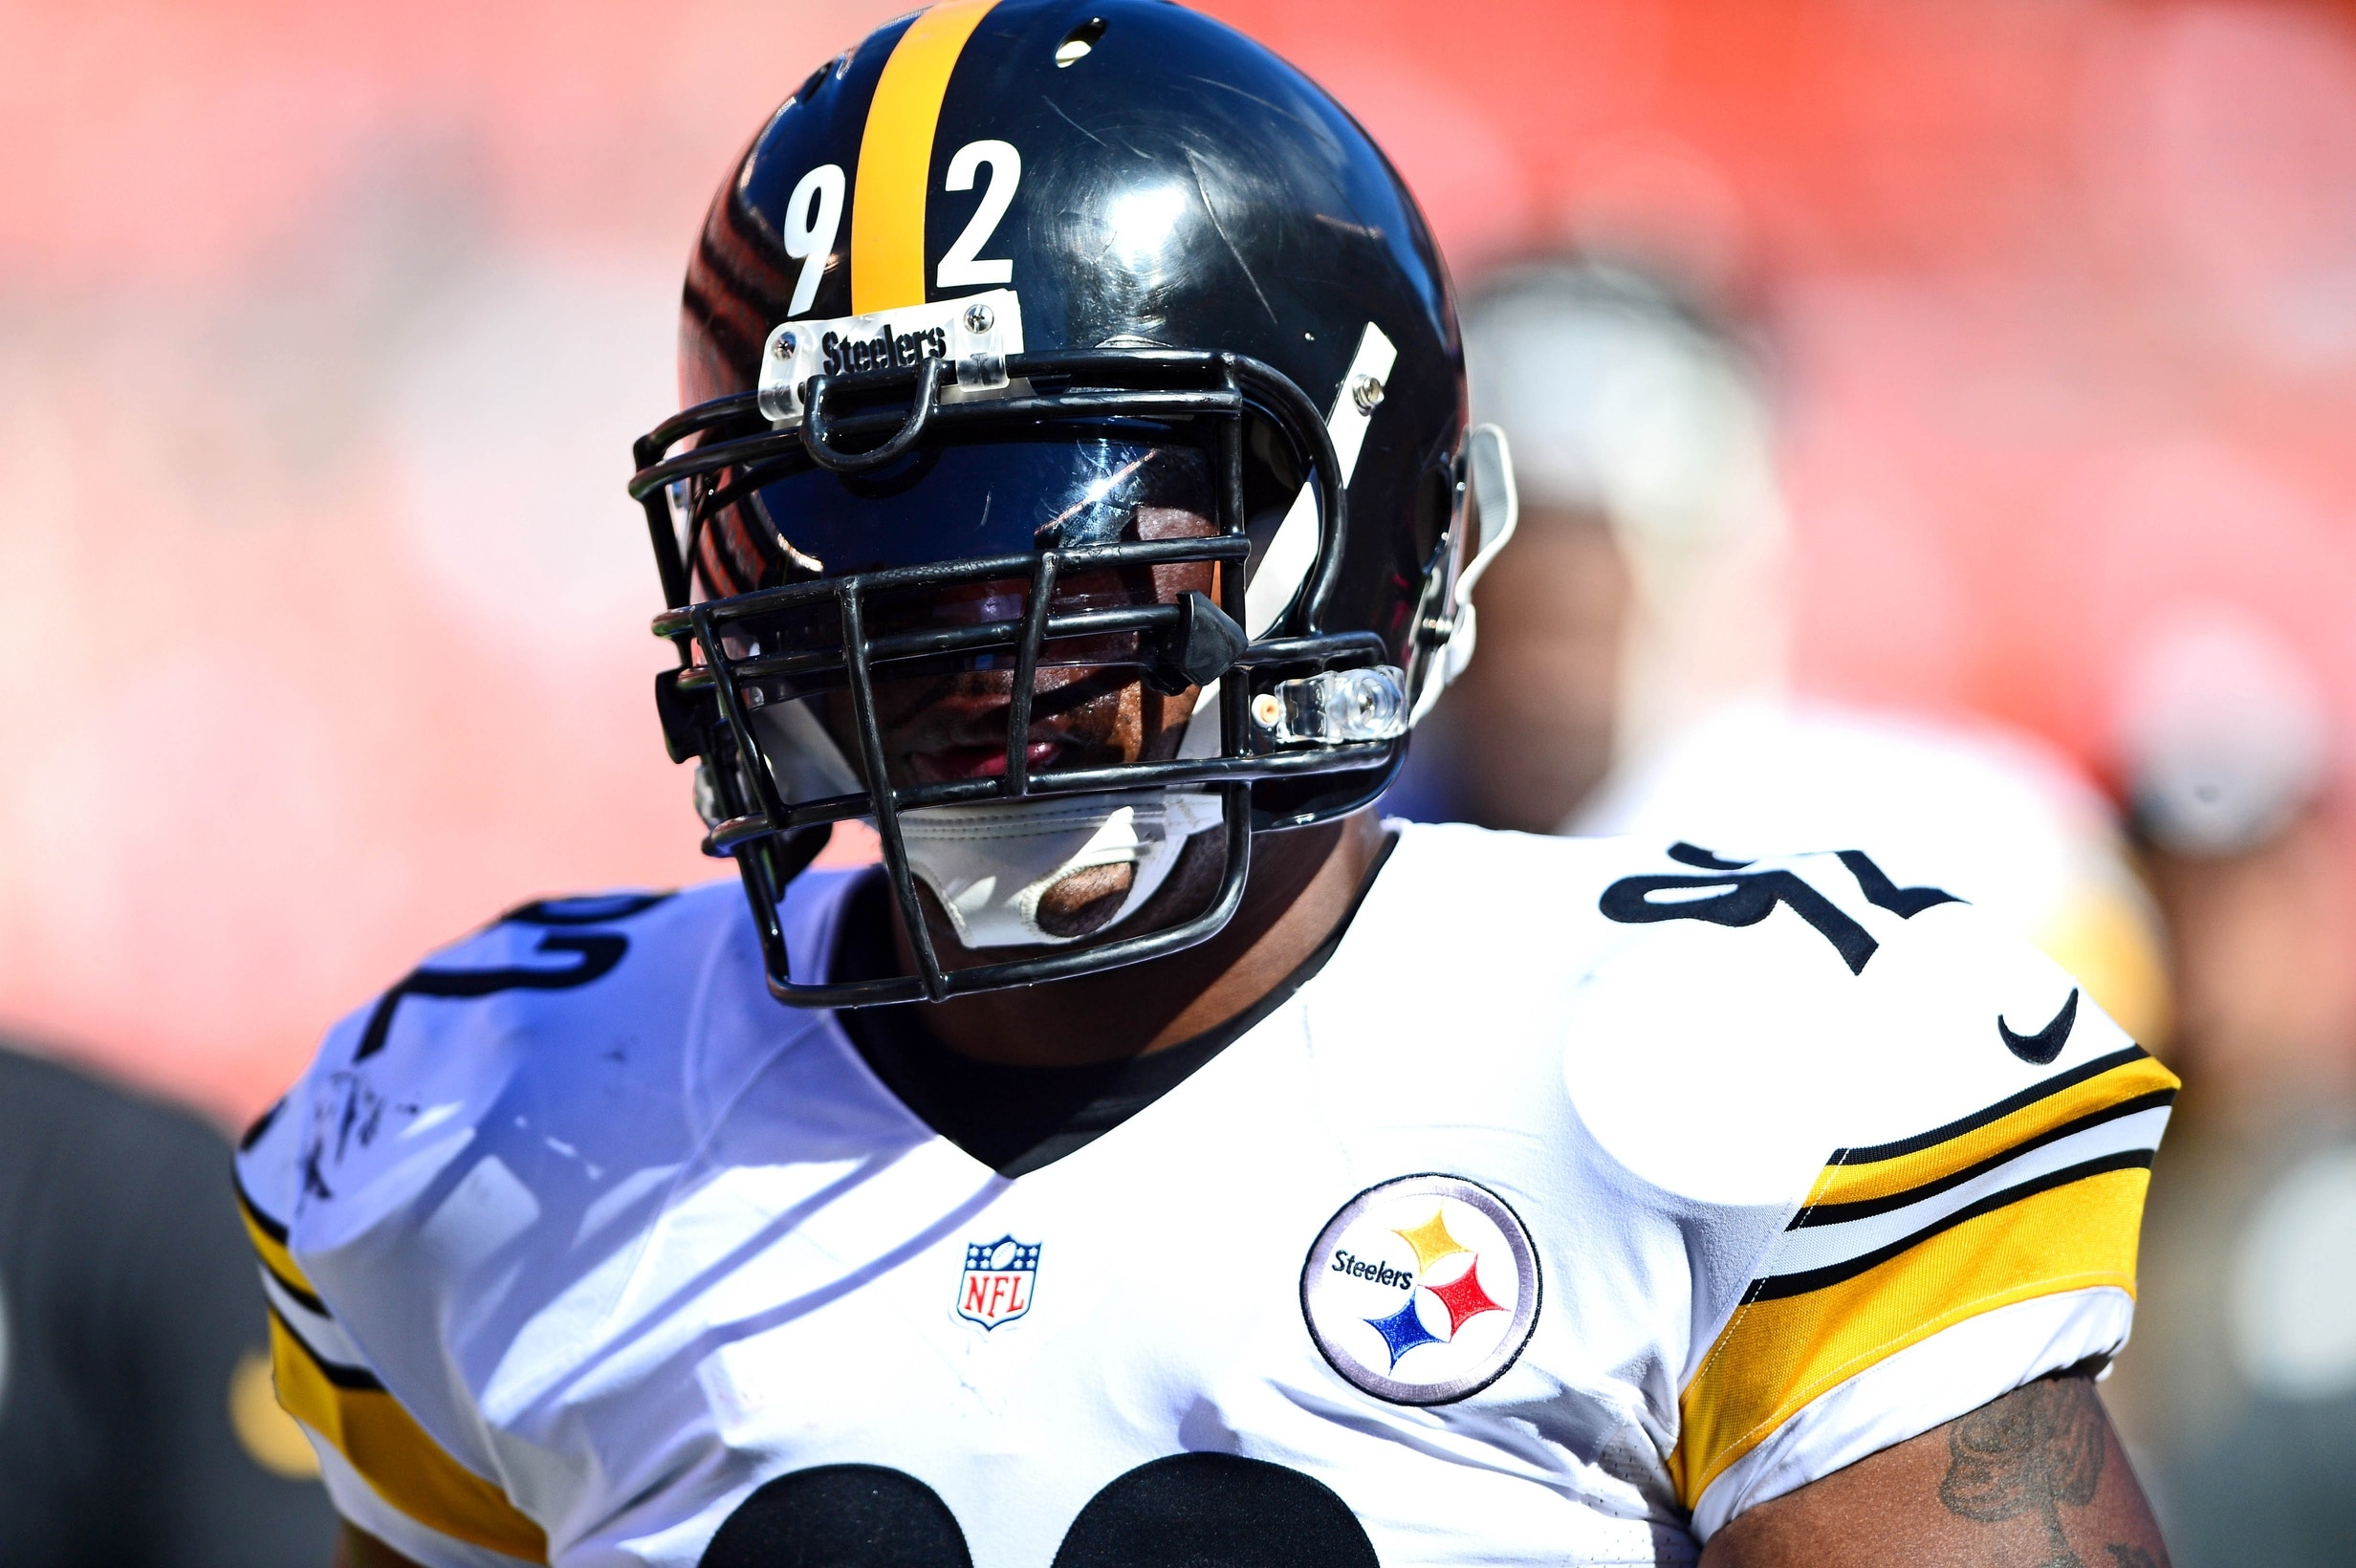 Watch Steelers' 37-Year-Old LB James Harrison Bench 500 Pounds